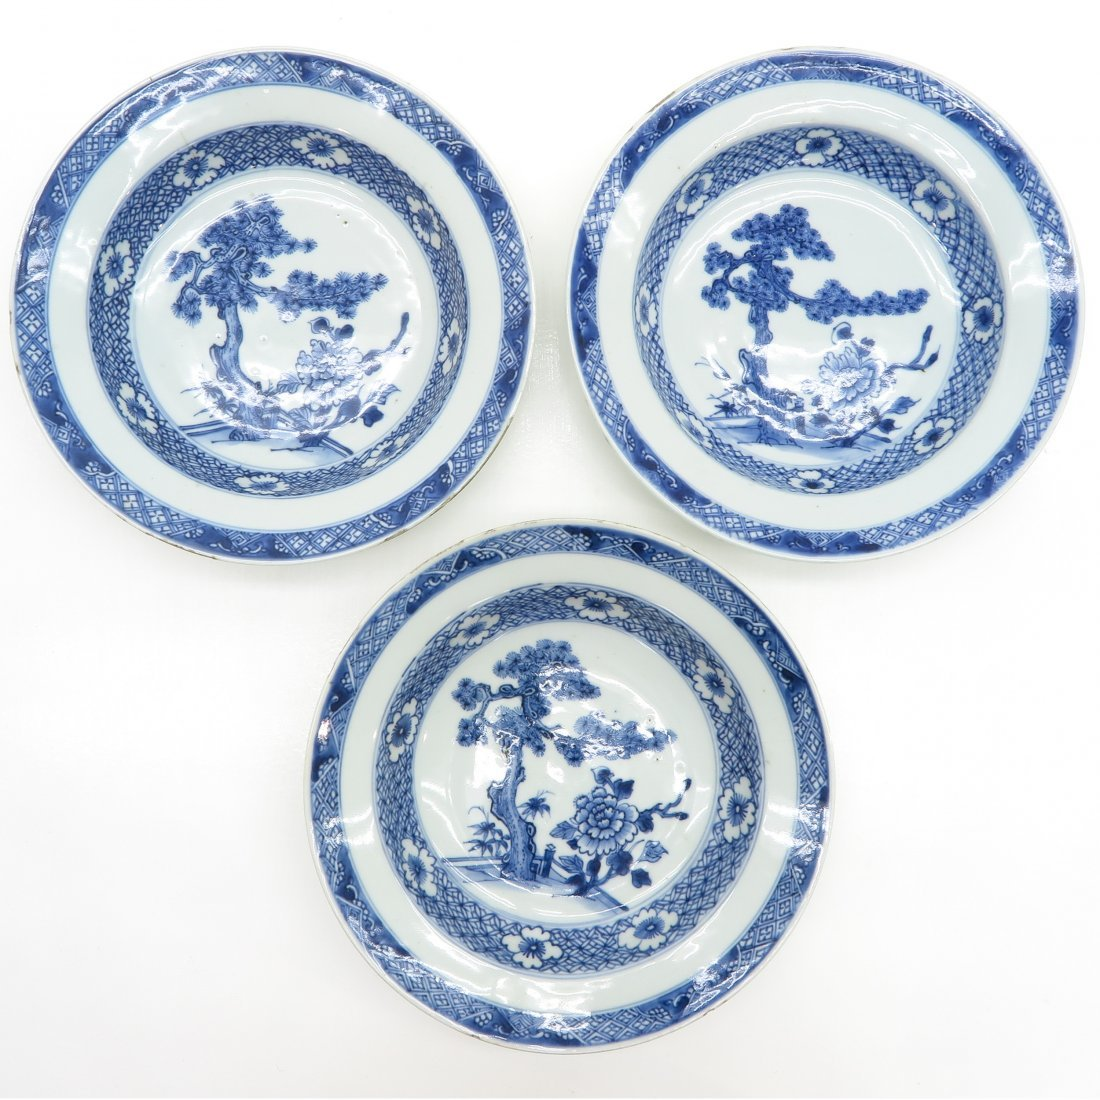 Lot of 3 18th Century China Porcelain Plates